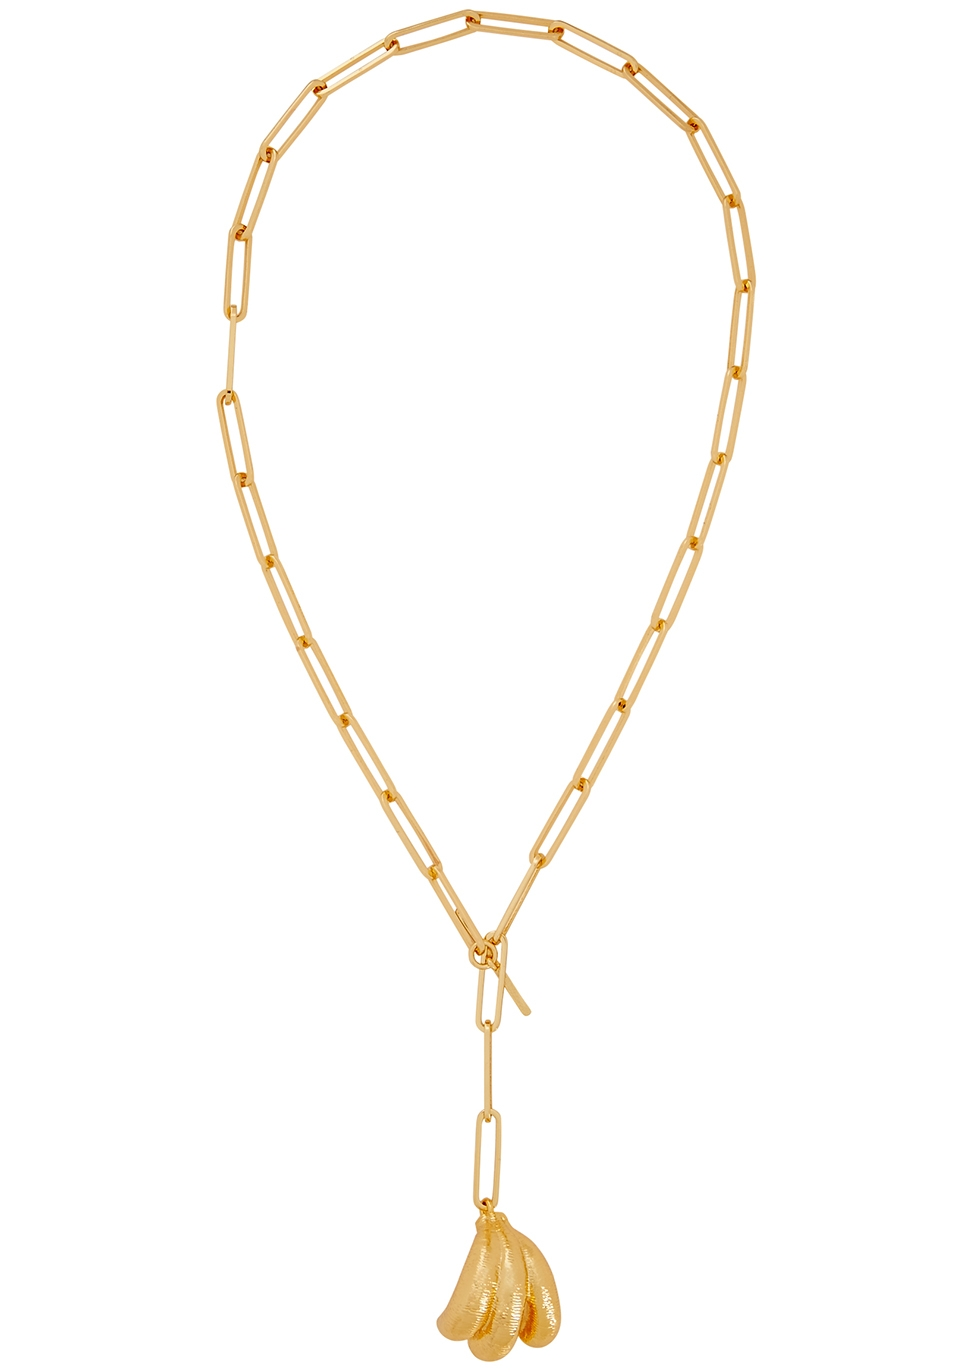 Sonia gold plated necklace - Rejina Pyo